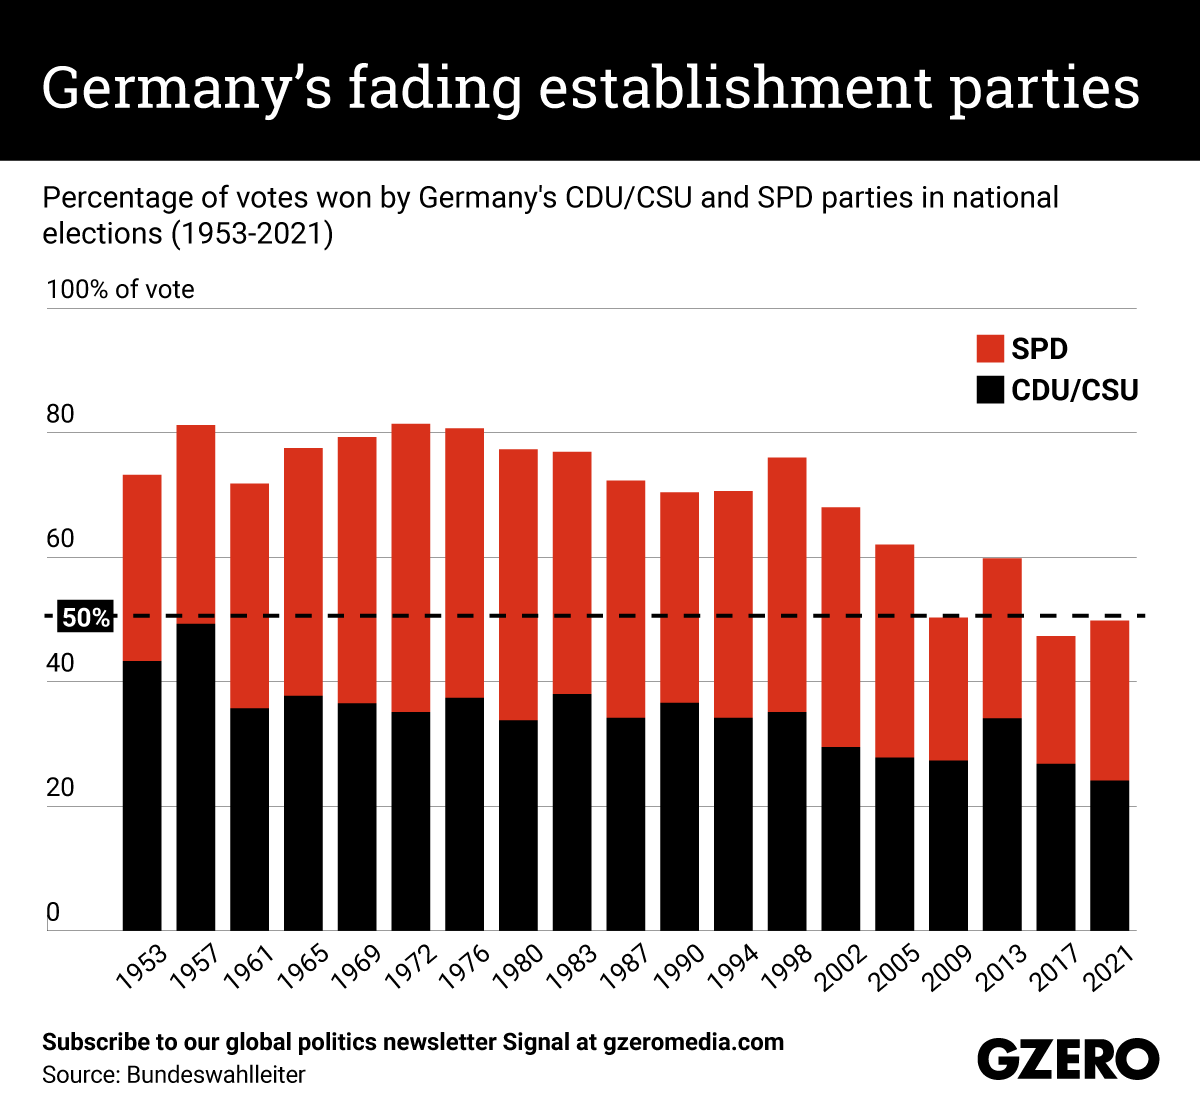 Percentage of votes won by Germany's CDU/CSU and SPD parties in national elections (1953-2021)